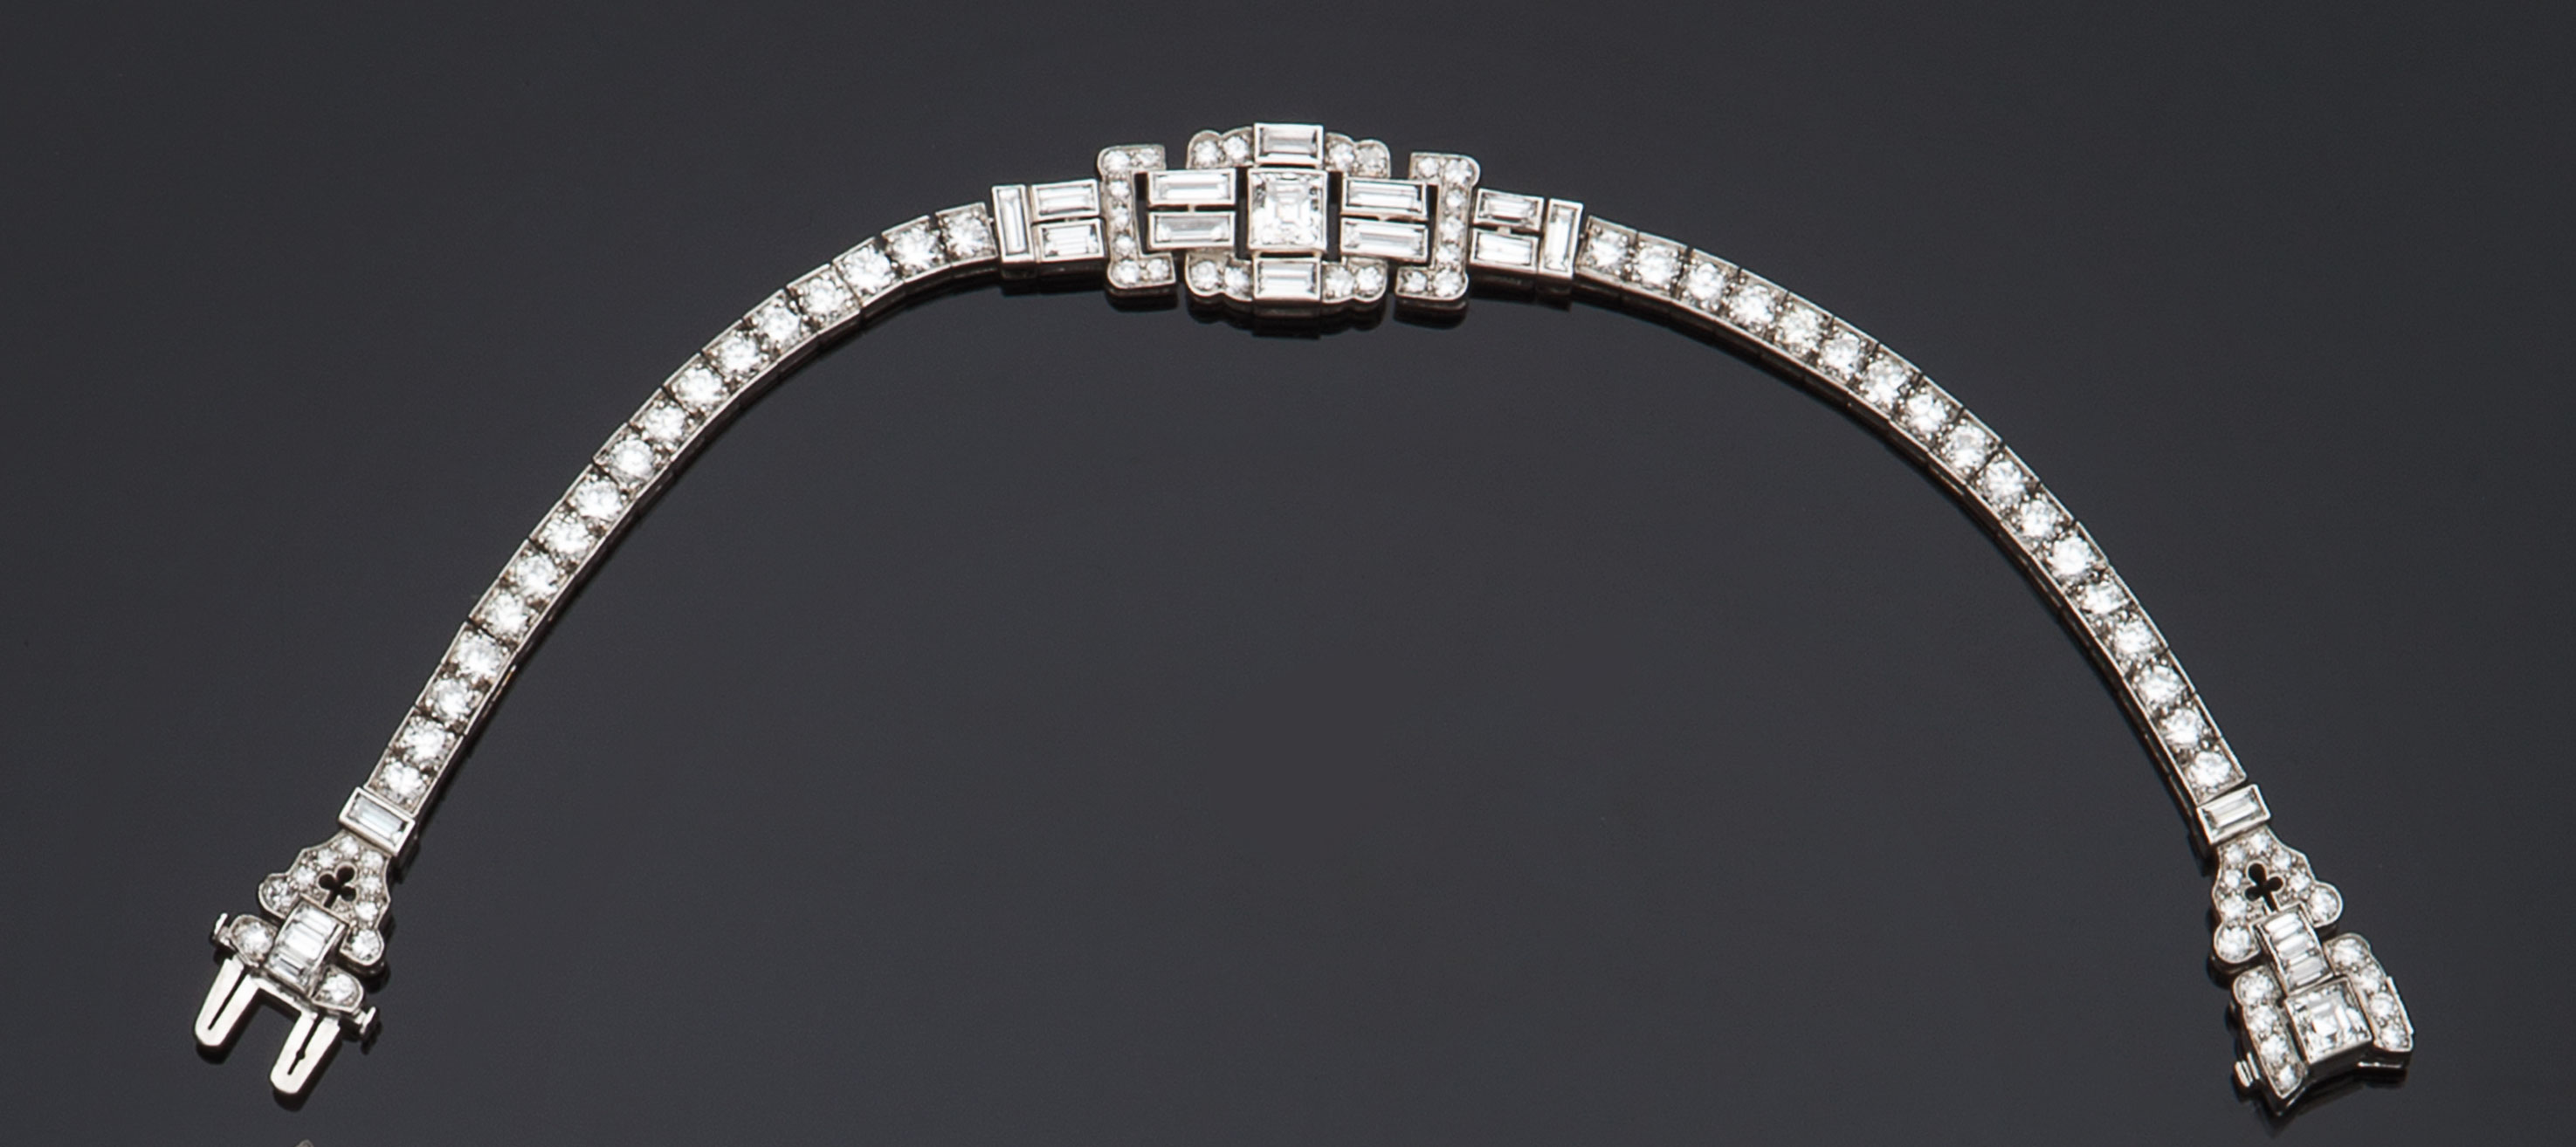 Collier in platino